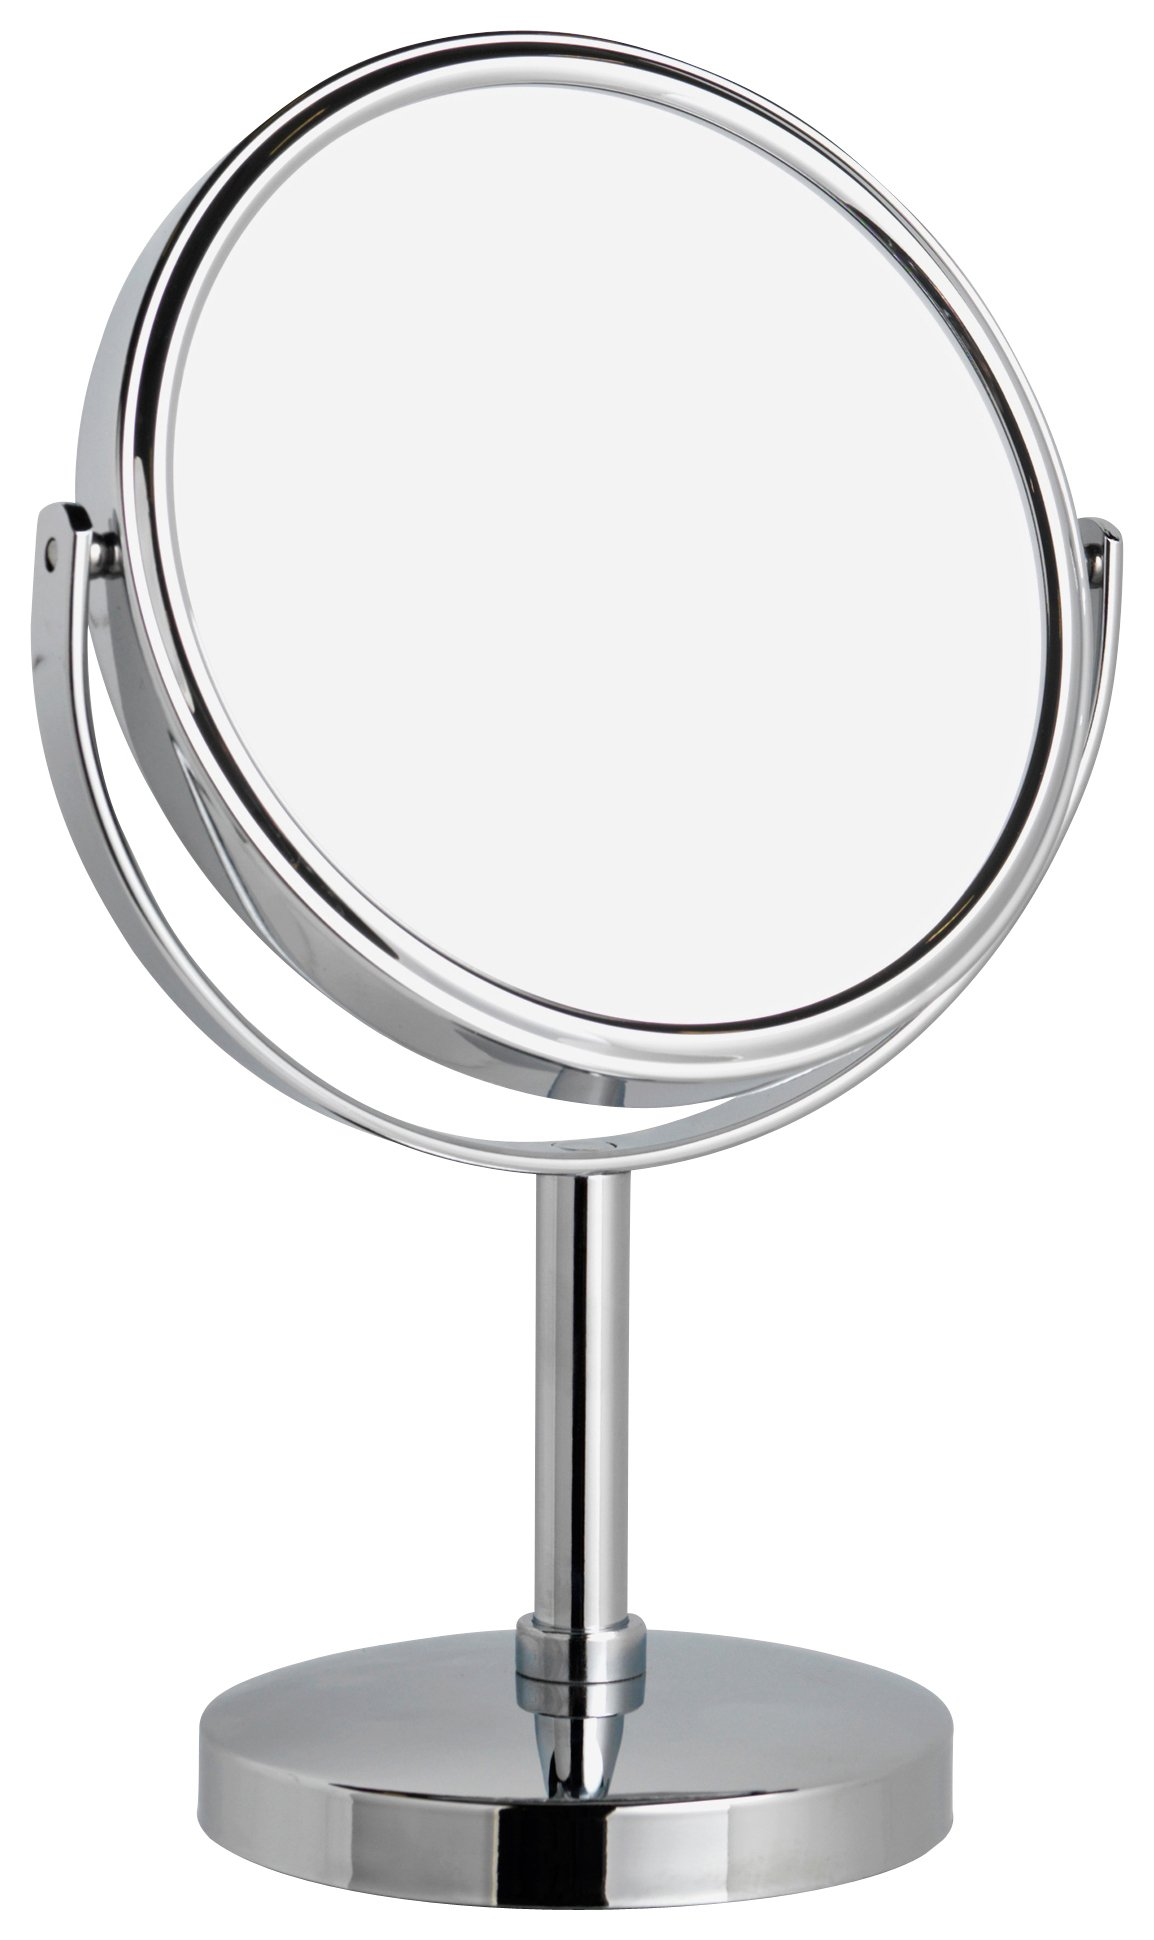 Buy Danielle Creations Chrome Beauty Mirror Make up mirrors Argos